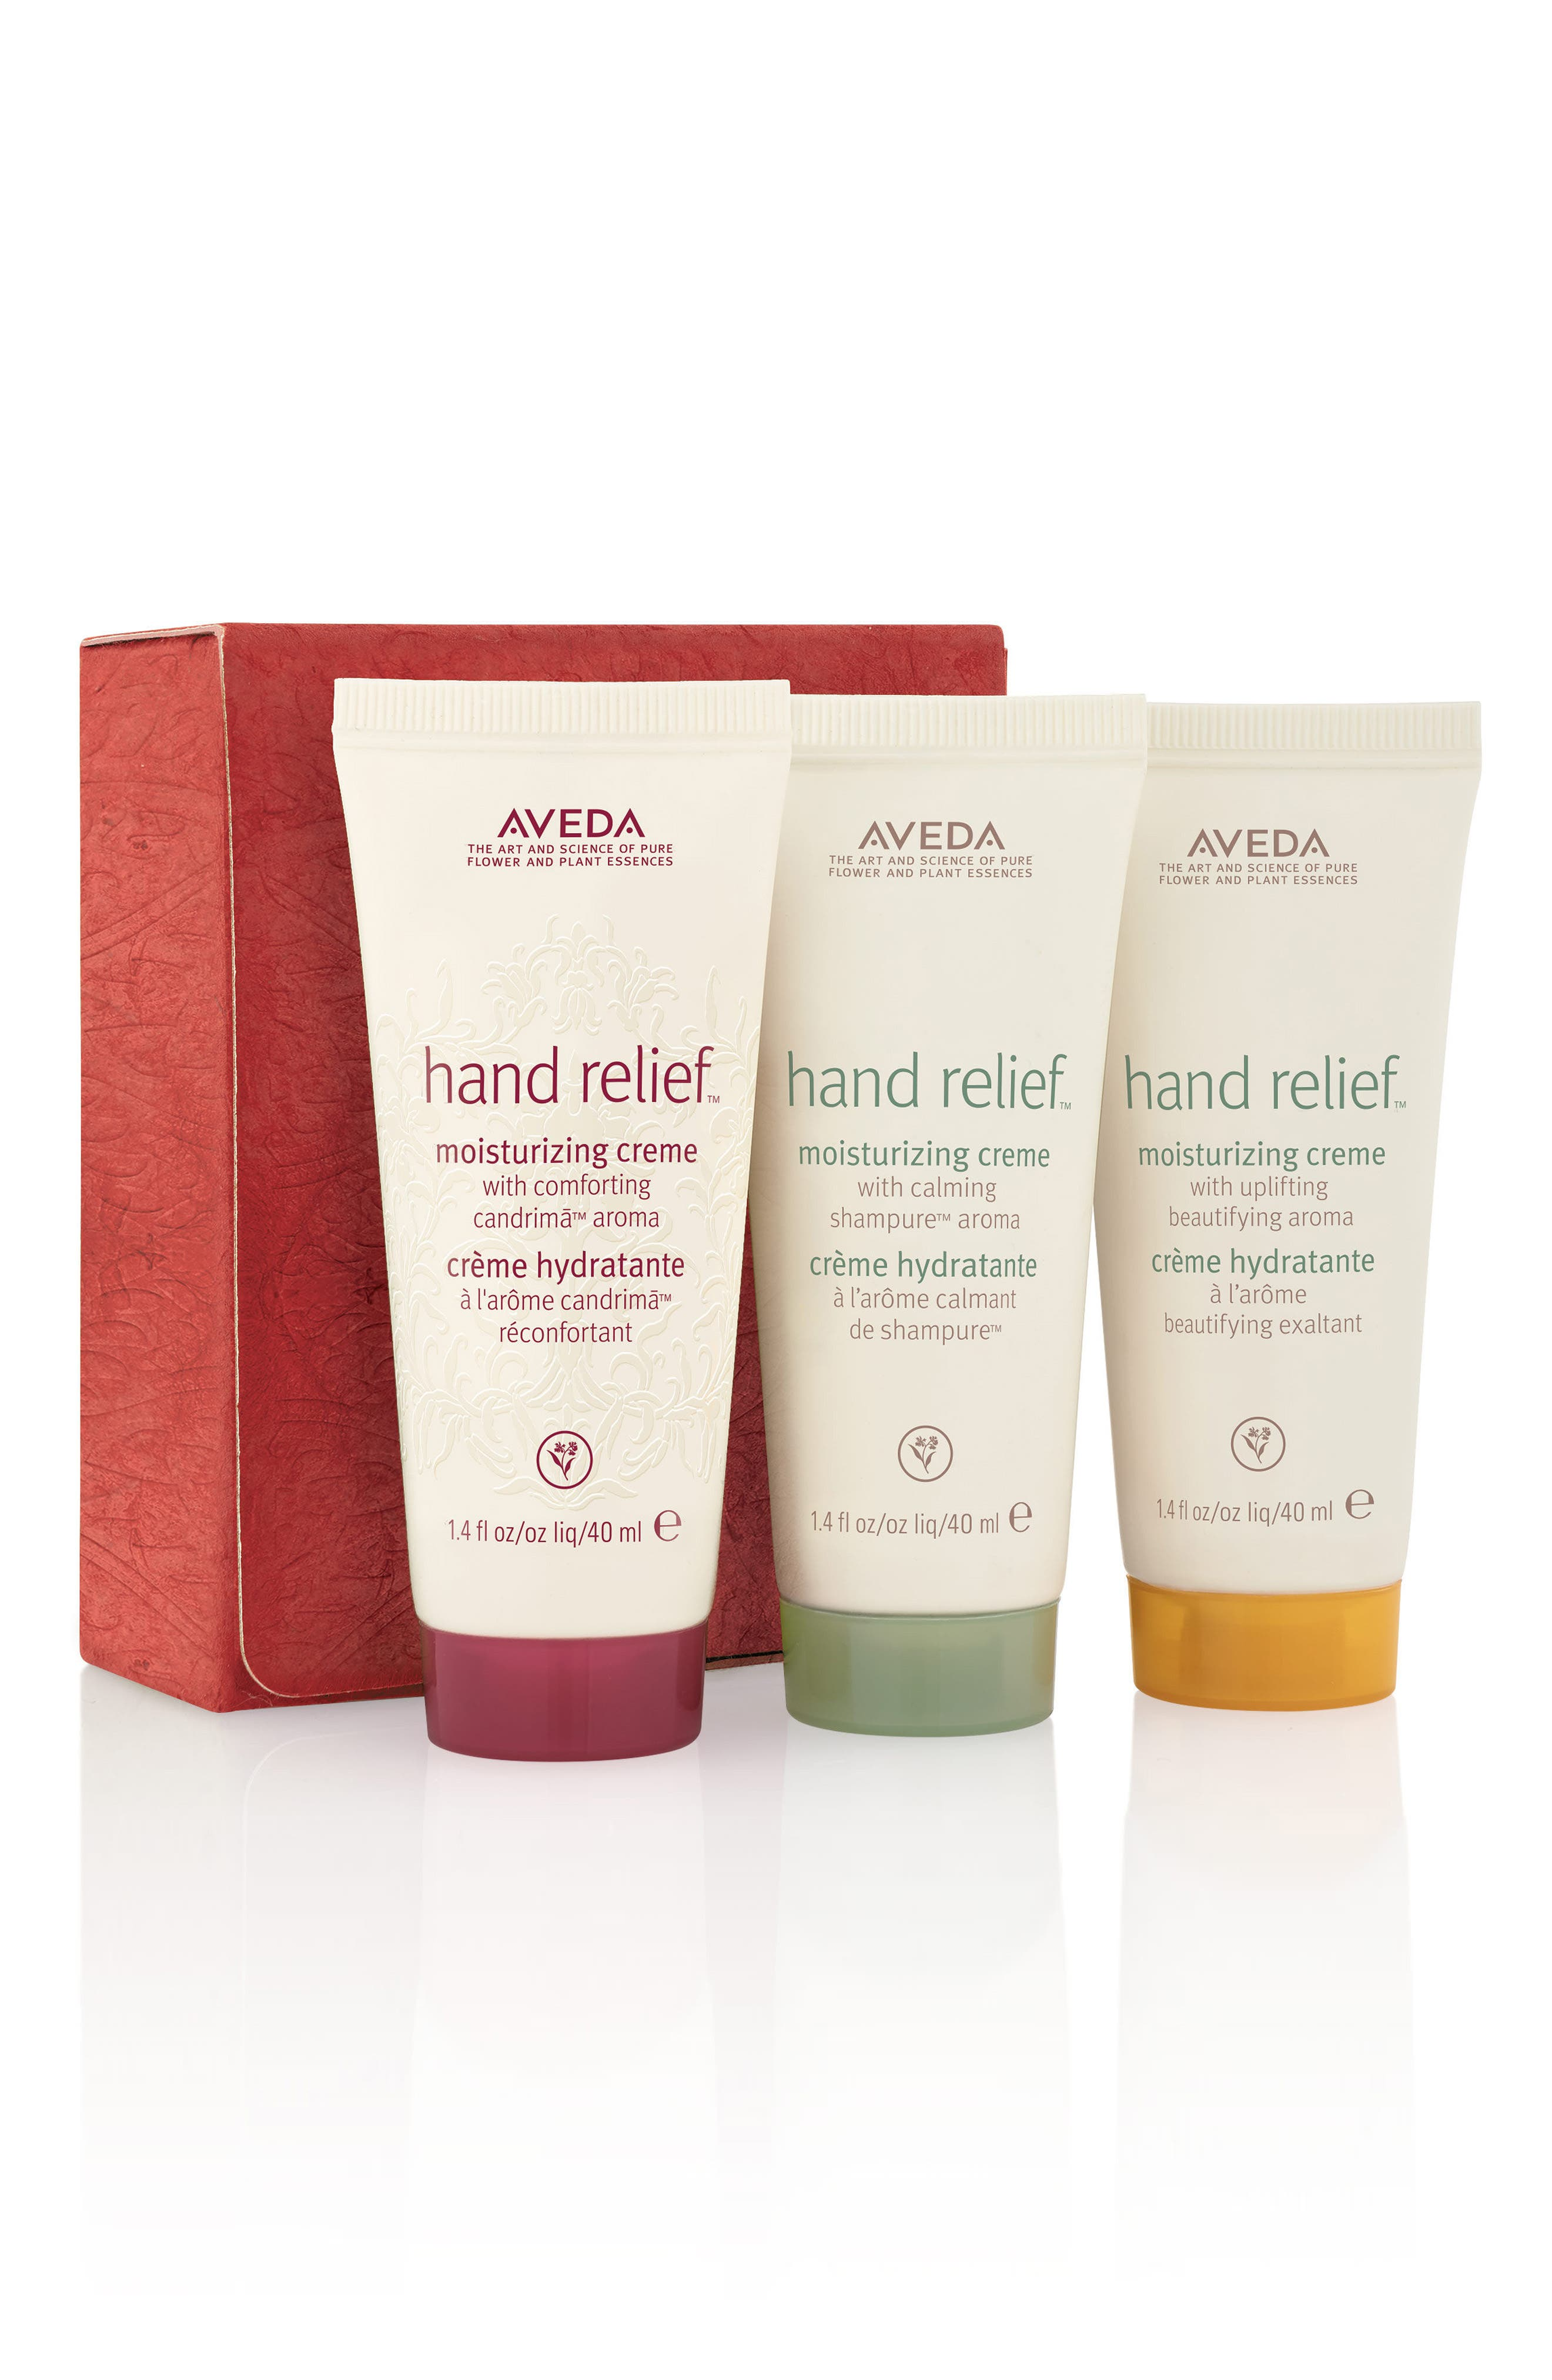 Aveda A Gift of Renewal for Your Journey Collection